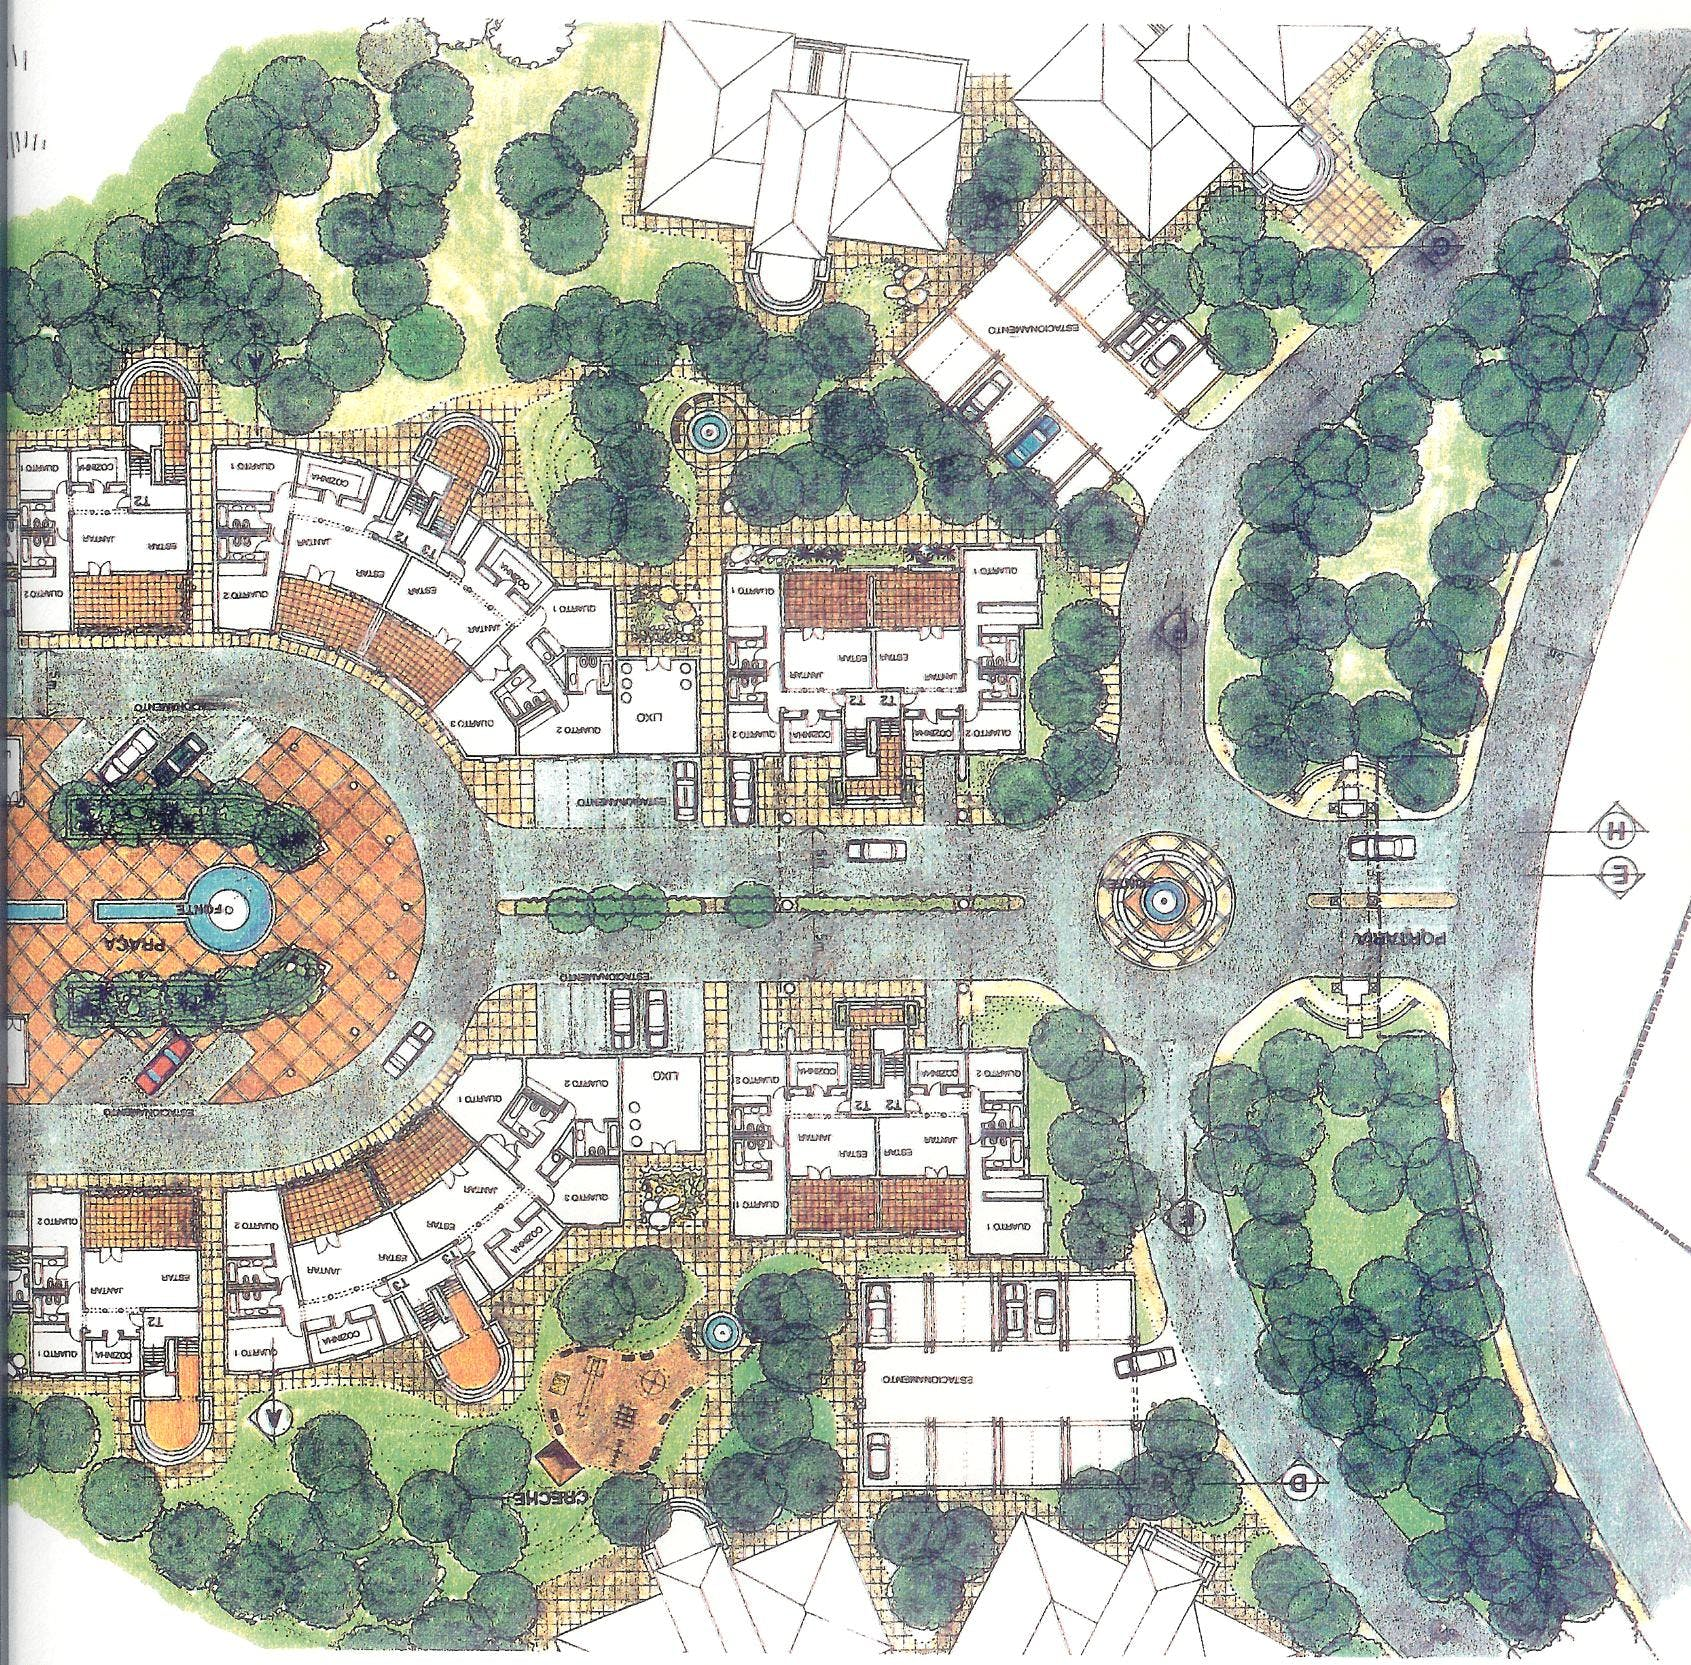 Master plan for a urban design golf course touristic village and 5 star hotel joao simao Urban design vs urban planning